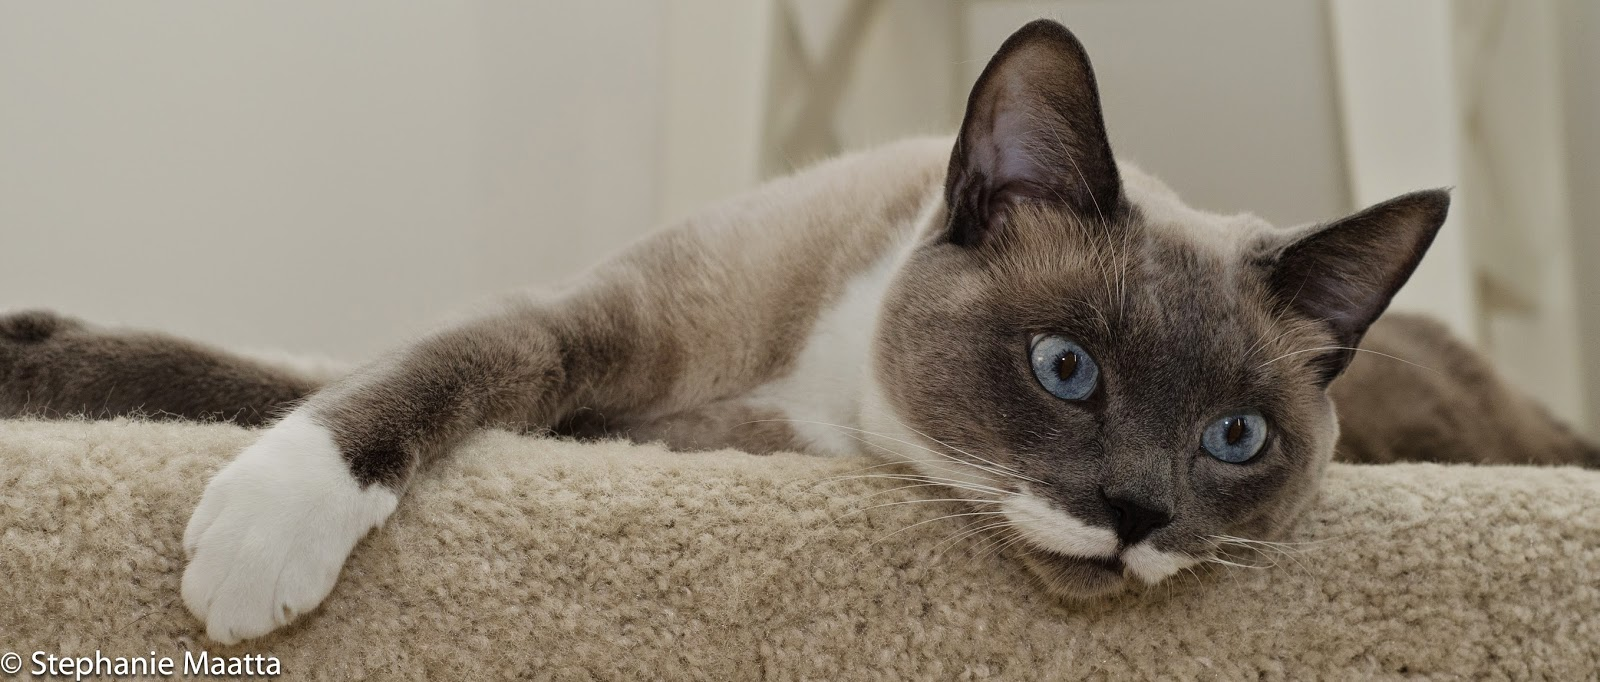 image of Siamese cat laying on stairs